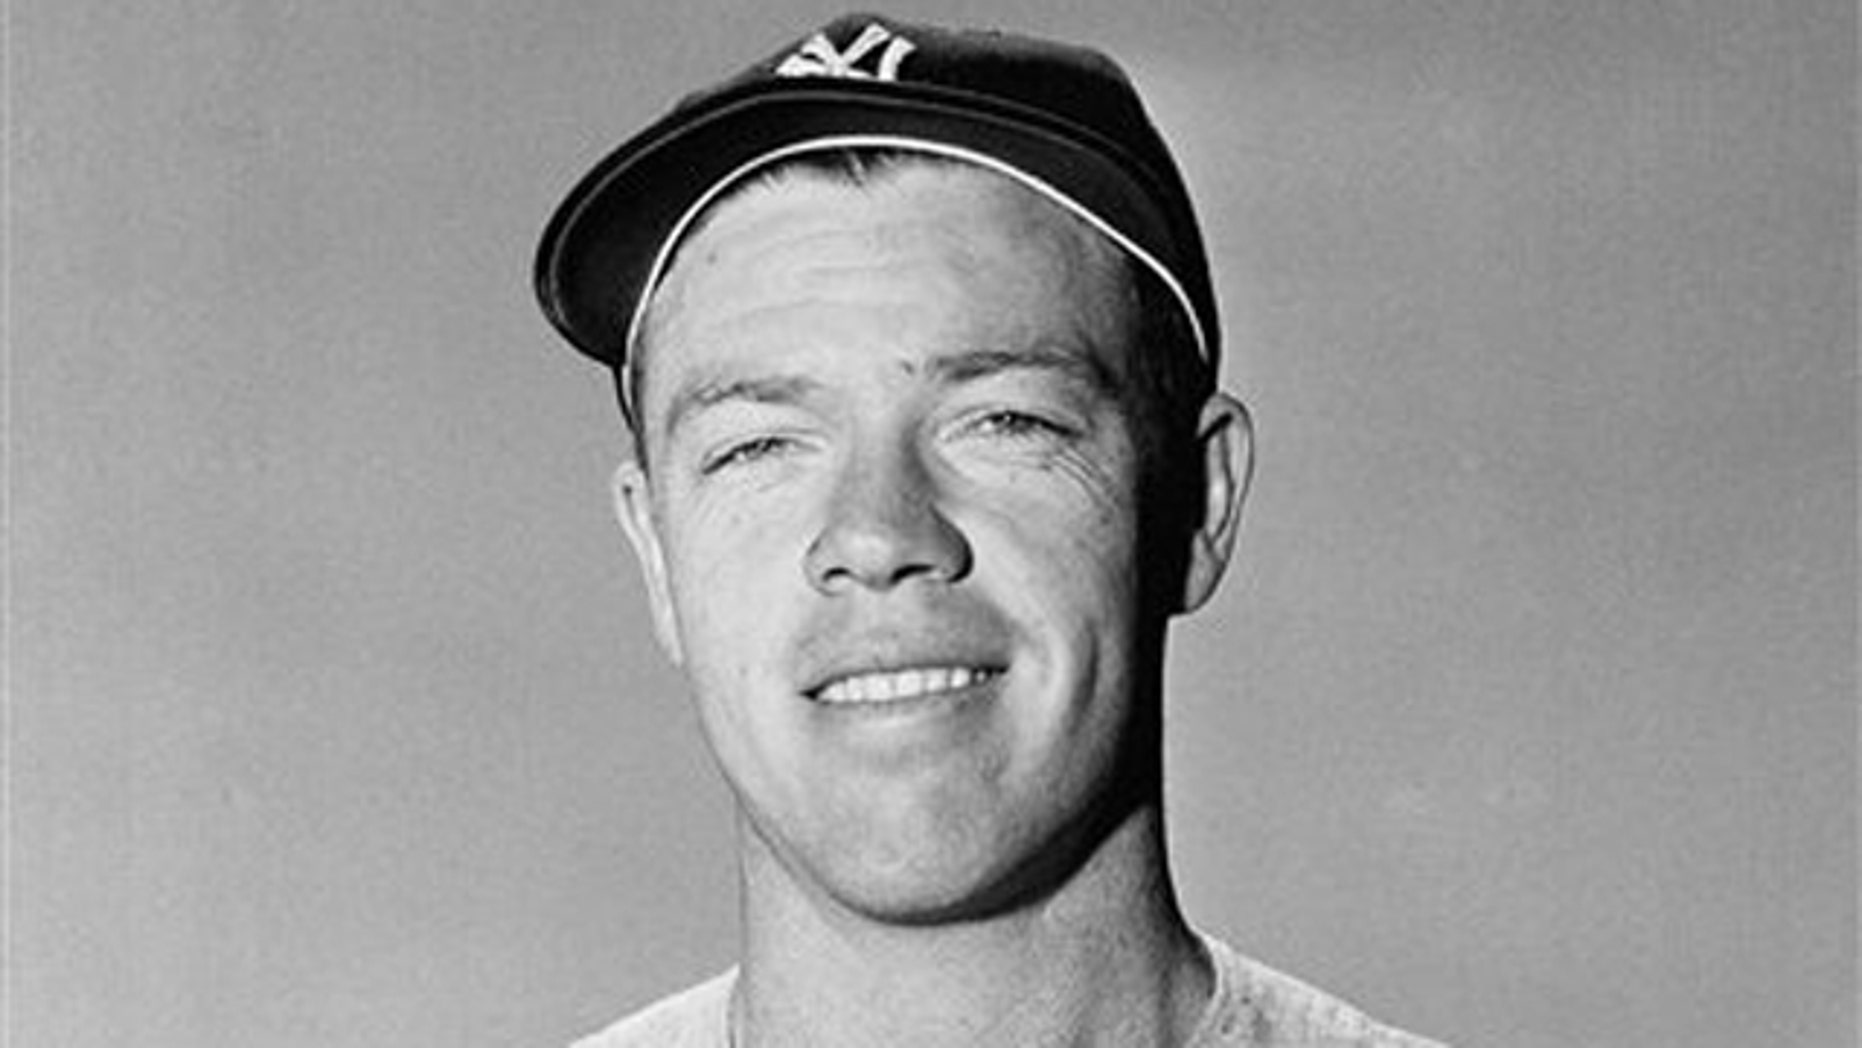 In this March 7, 1954, file photo, New York Yankees' Gil McDougald poses for a photo in St. Petersburg, Fla. McDougald, an All-Star infielder who helped the Yankees win five World Series championships during the 1950s, has died at 82.